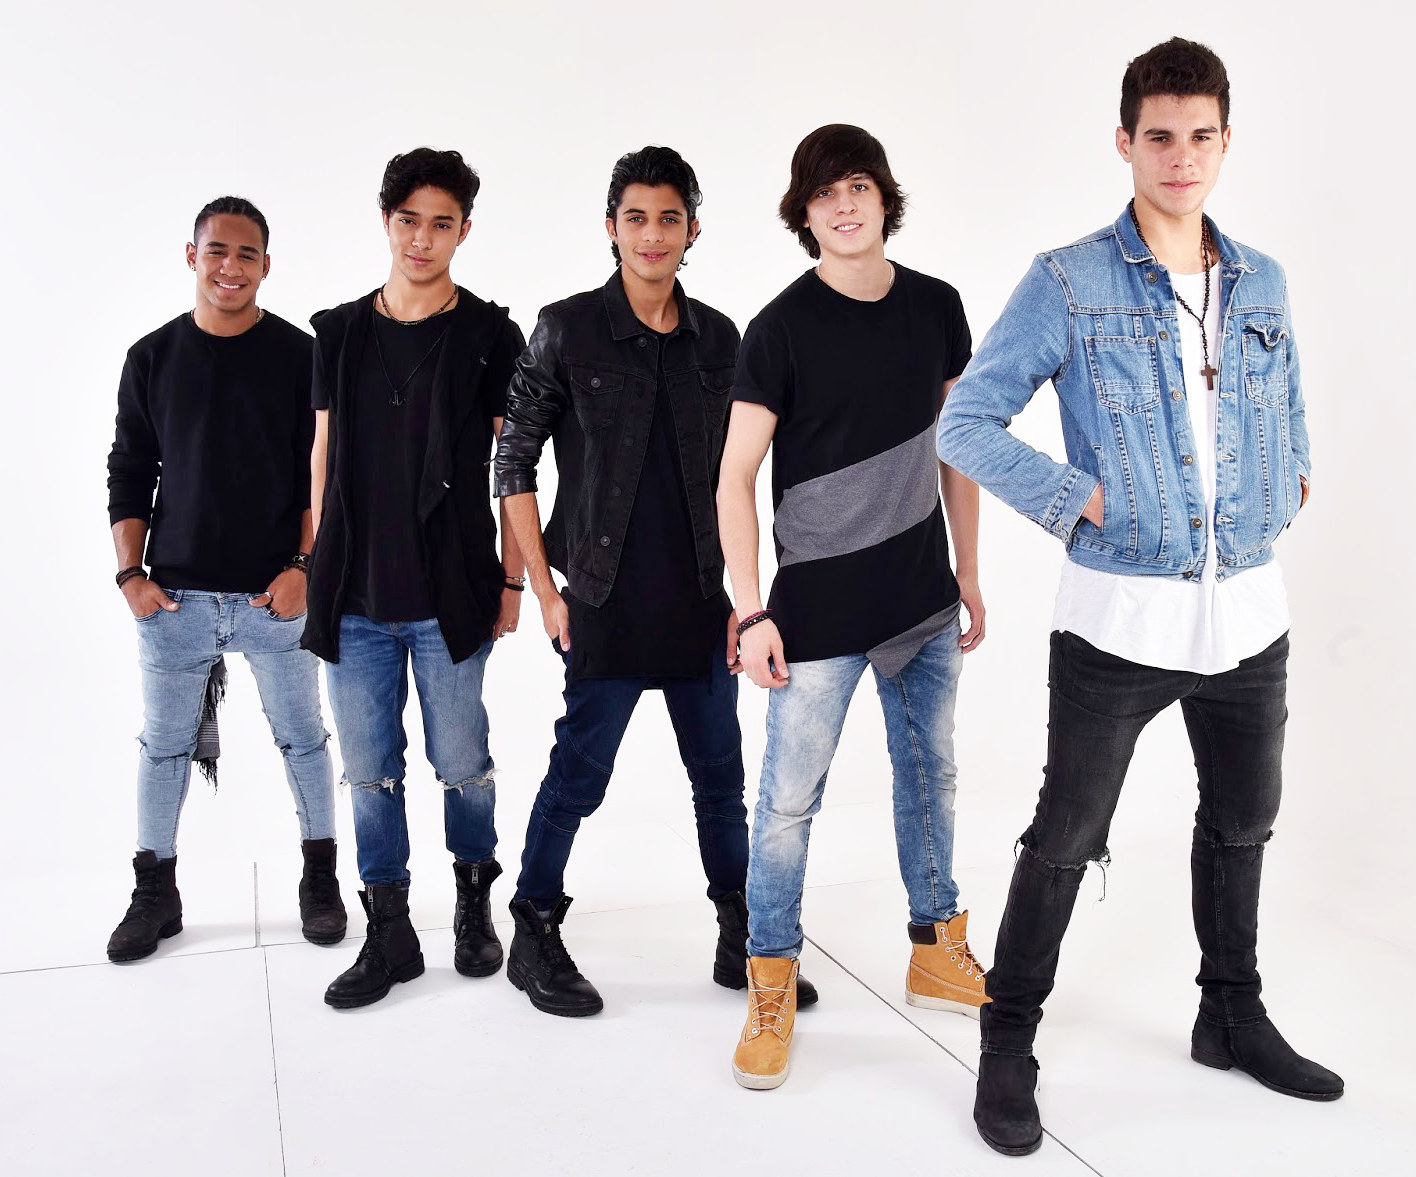 CNCO Lyrics, Music, News and Biography | MetroLyrics